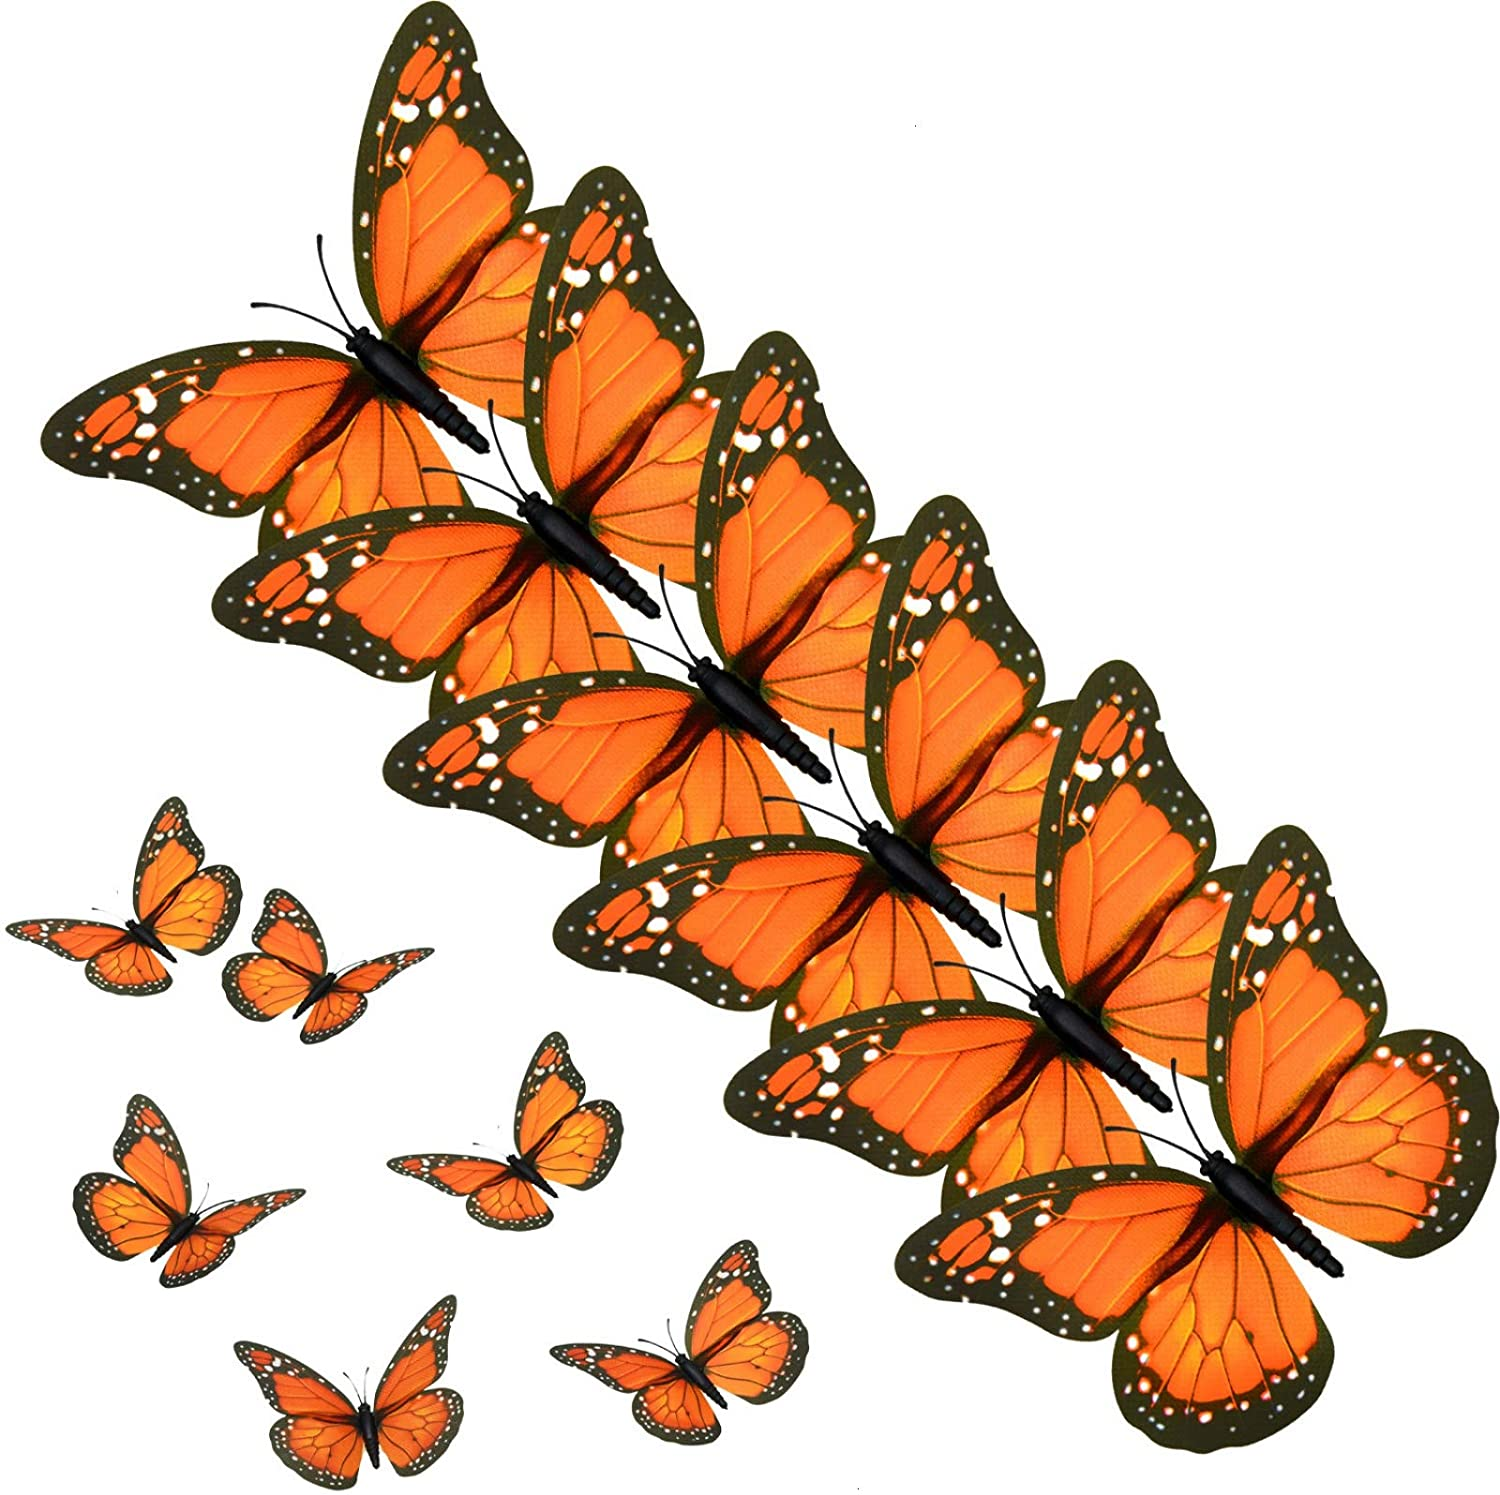 AQUEENLY Monarch Butterfly Decorations, 4.72'' Orange Premium Artificial Monarch Butterfly to Decorate for Craft, Home, Wall, Wedding, Party (12 Pcs)